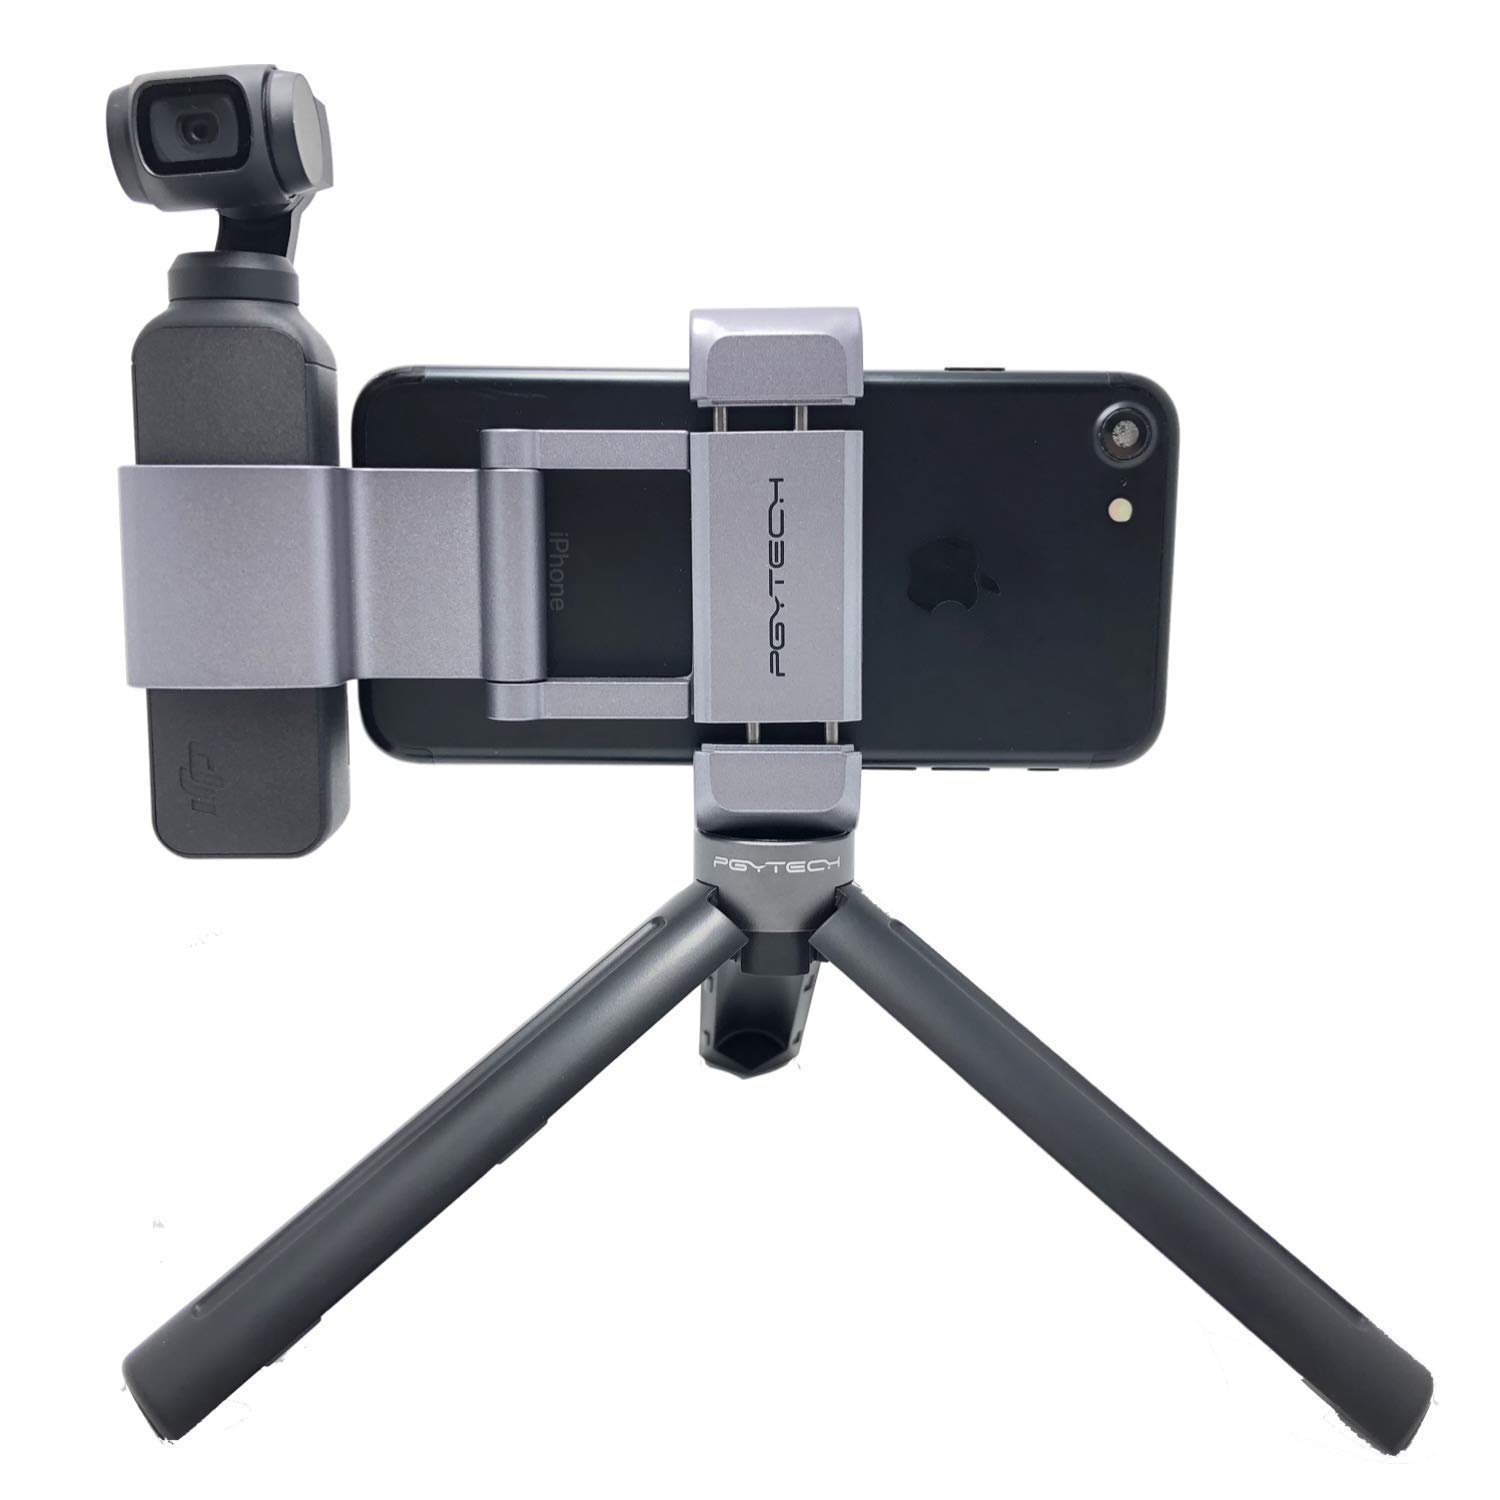 PGYTECH OSMO Pocket Phone Holder+ Expansion Accessories with Tripod Mini Compatible with DJI OSMO Pocket Accessories by PGYTECH